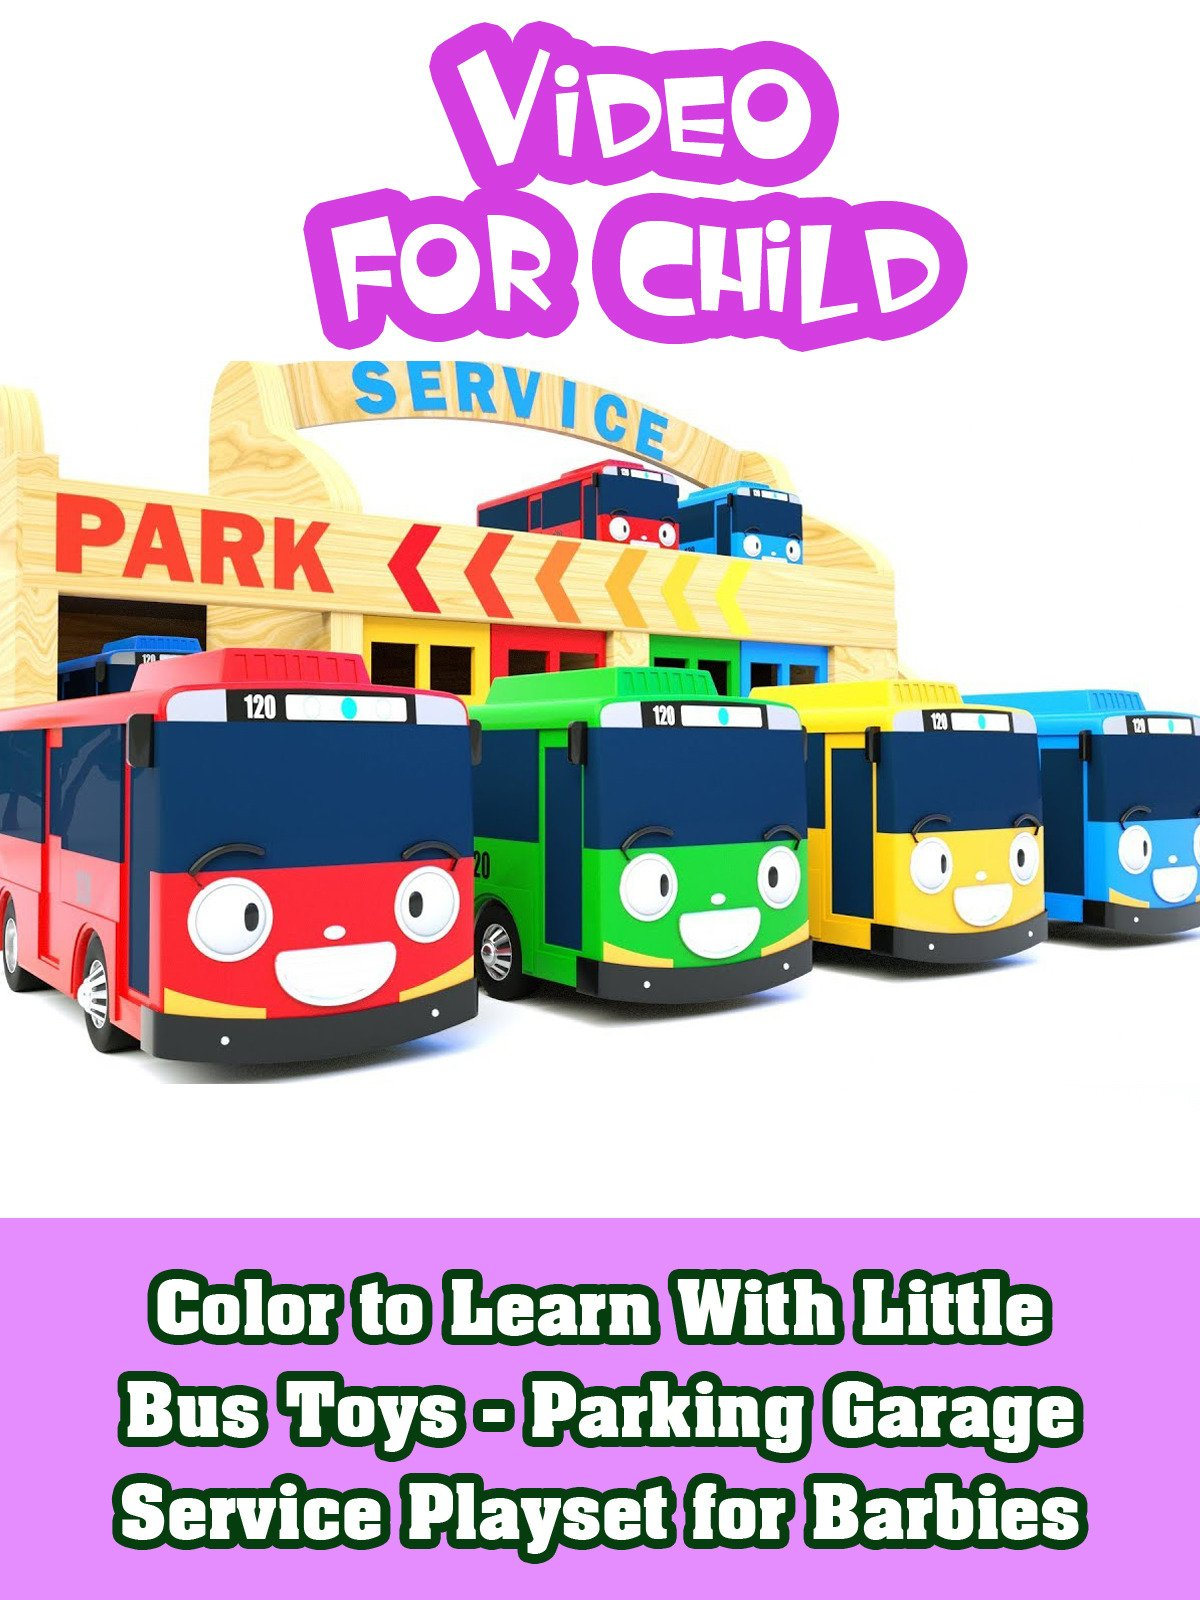 Color to Learn With Little Bus Toys